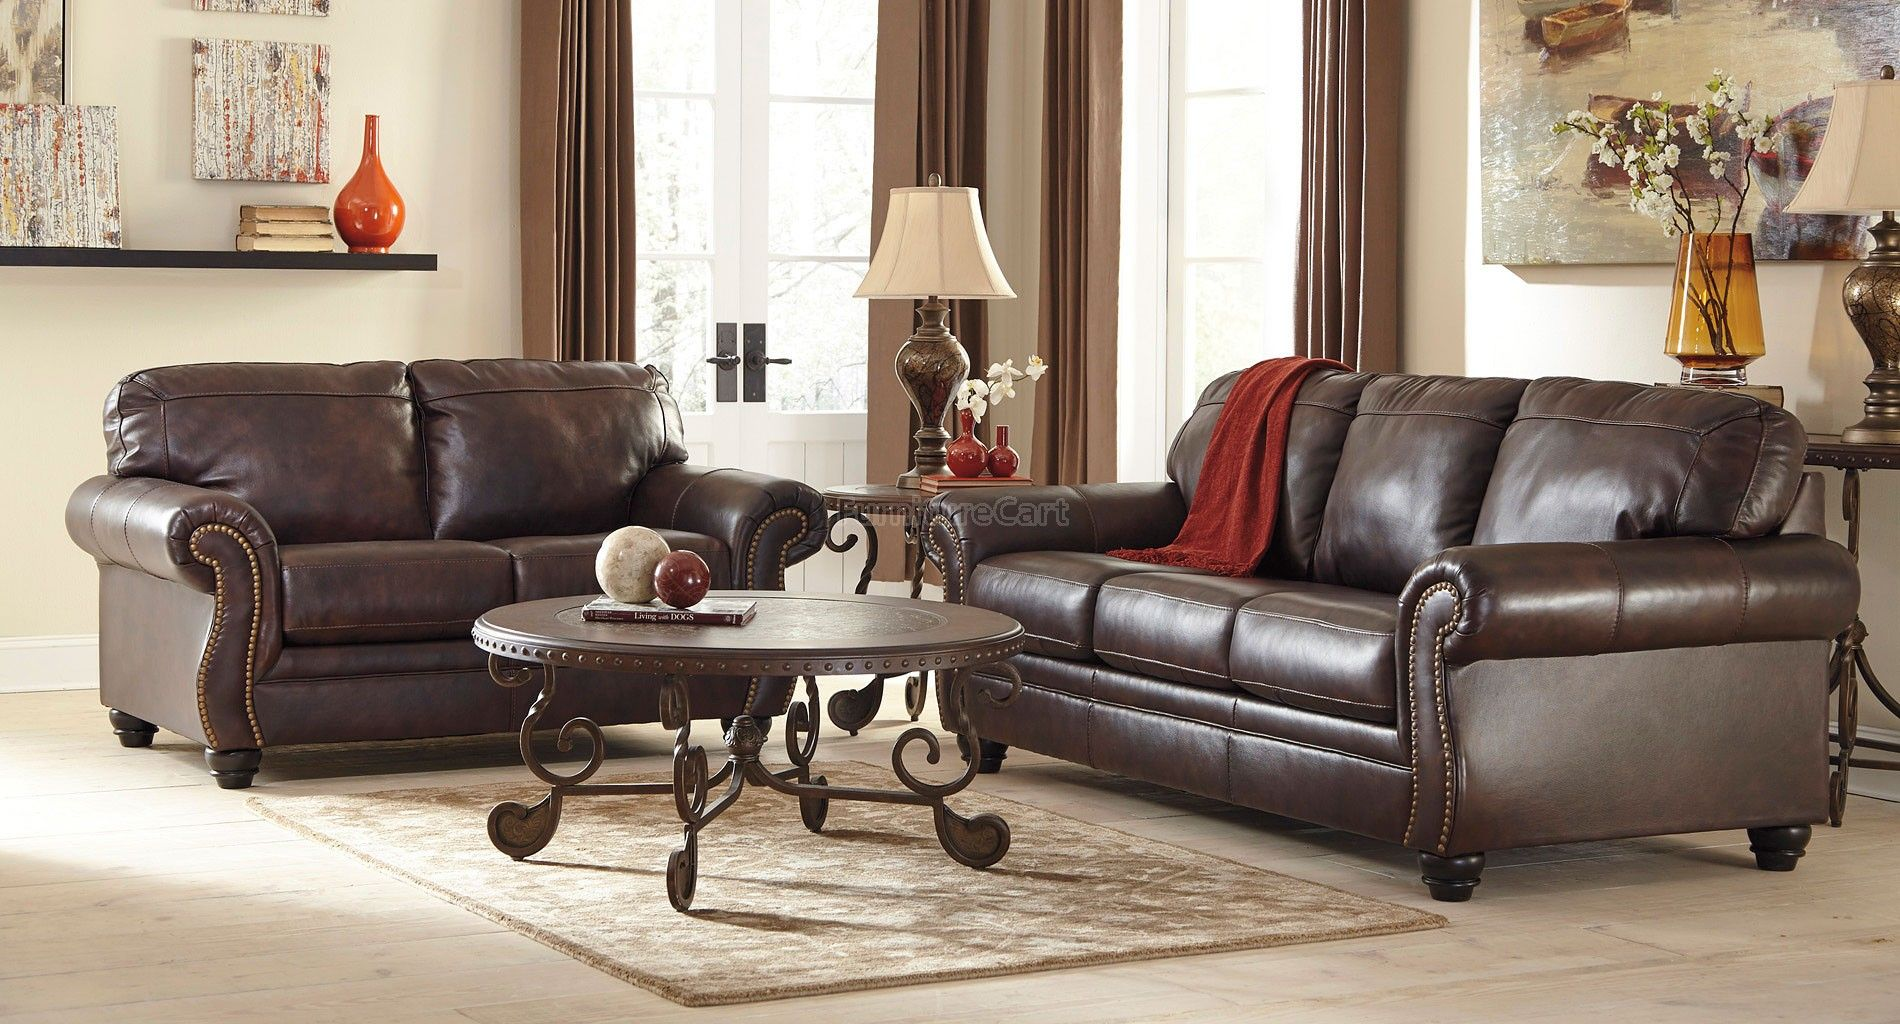 Bristan Walnut Living Room Set Queen Sofa Sleeper